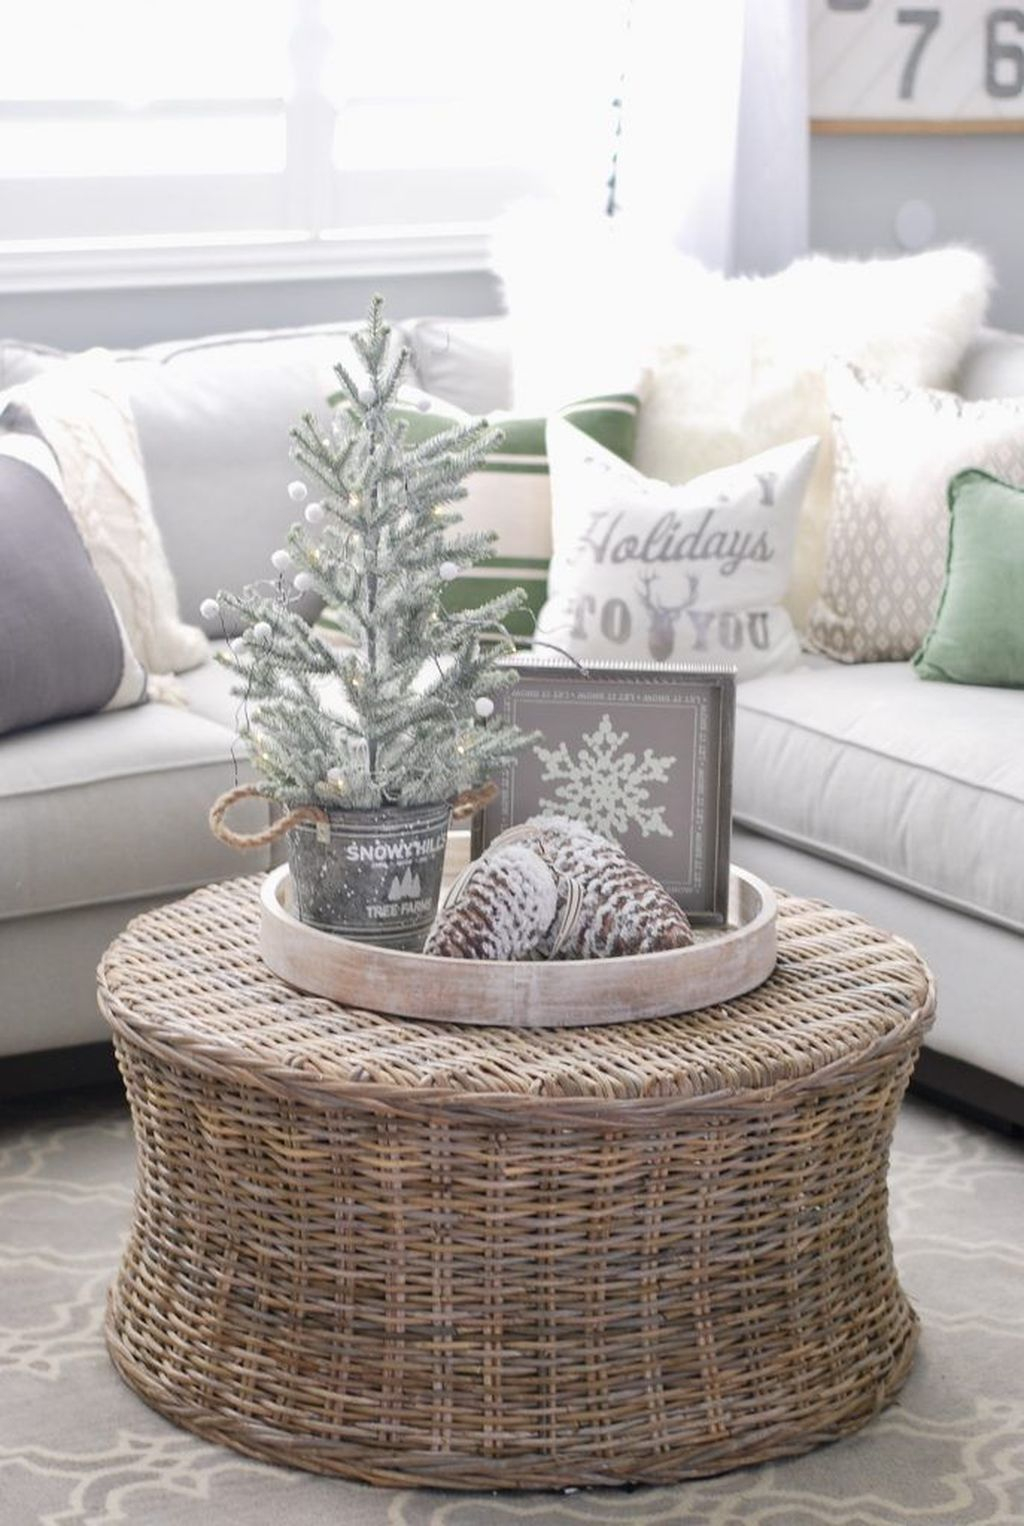 Cute Homes Decor Ideas To Snuggle In This Winter 11